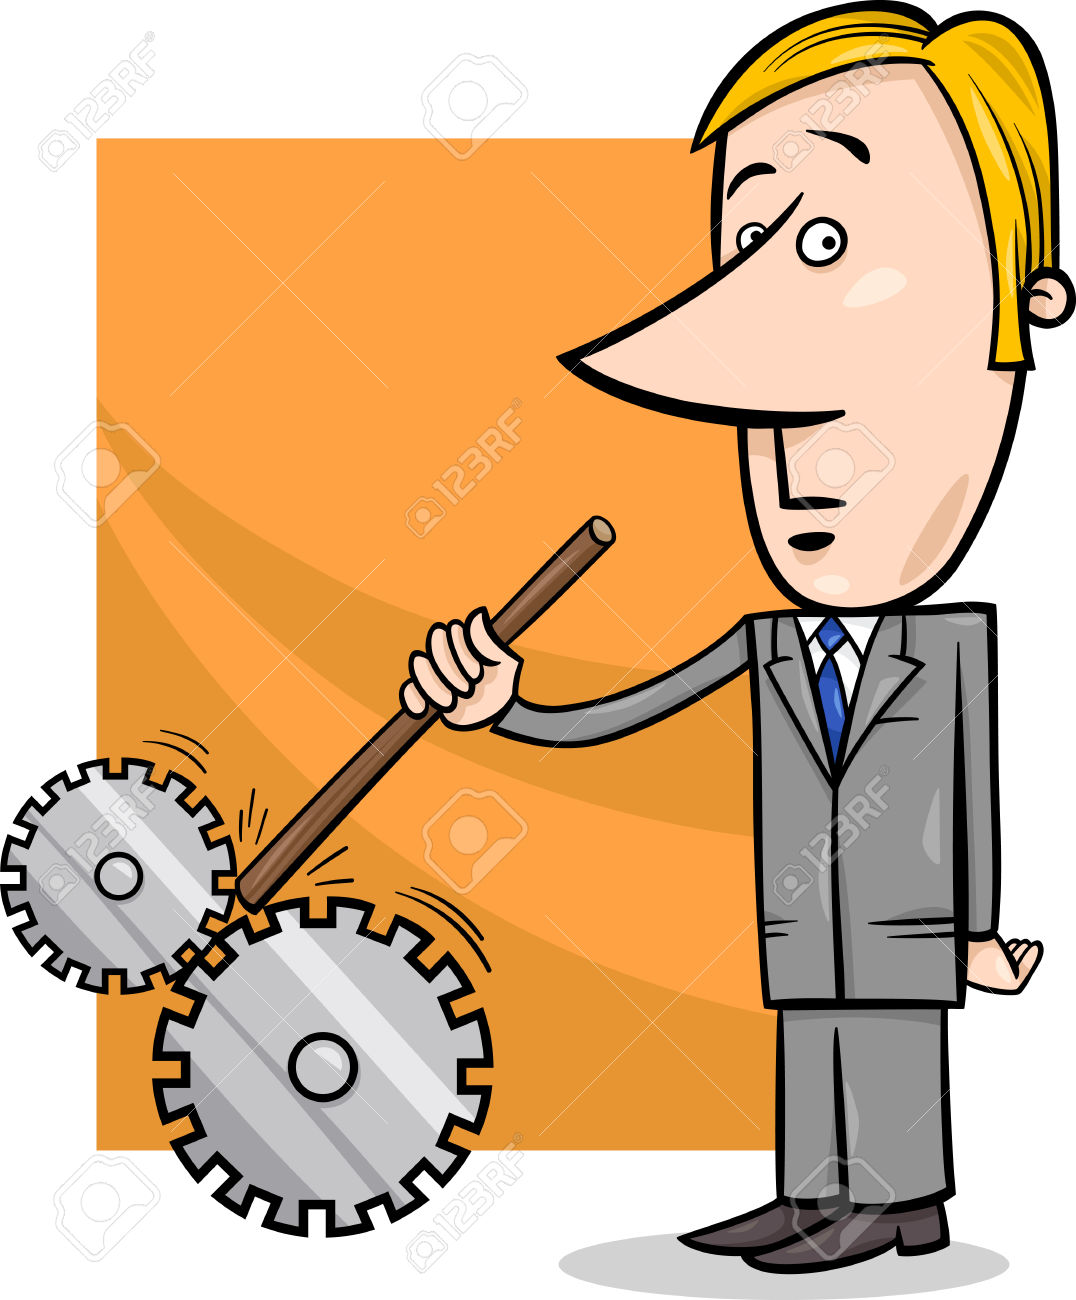 Man vs machine clipart jpg library library Concept Cartoon Illustration Of Saboteur Man Or Businessman ... jpg library library